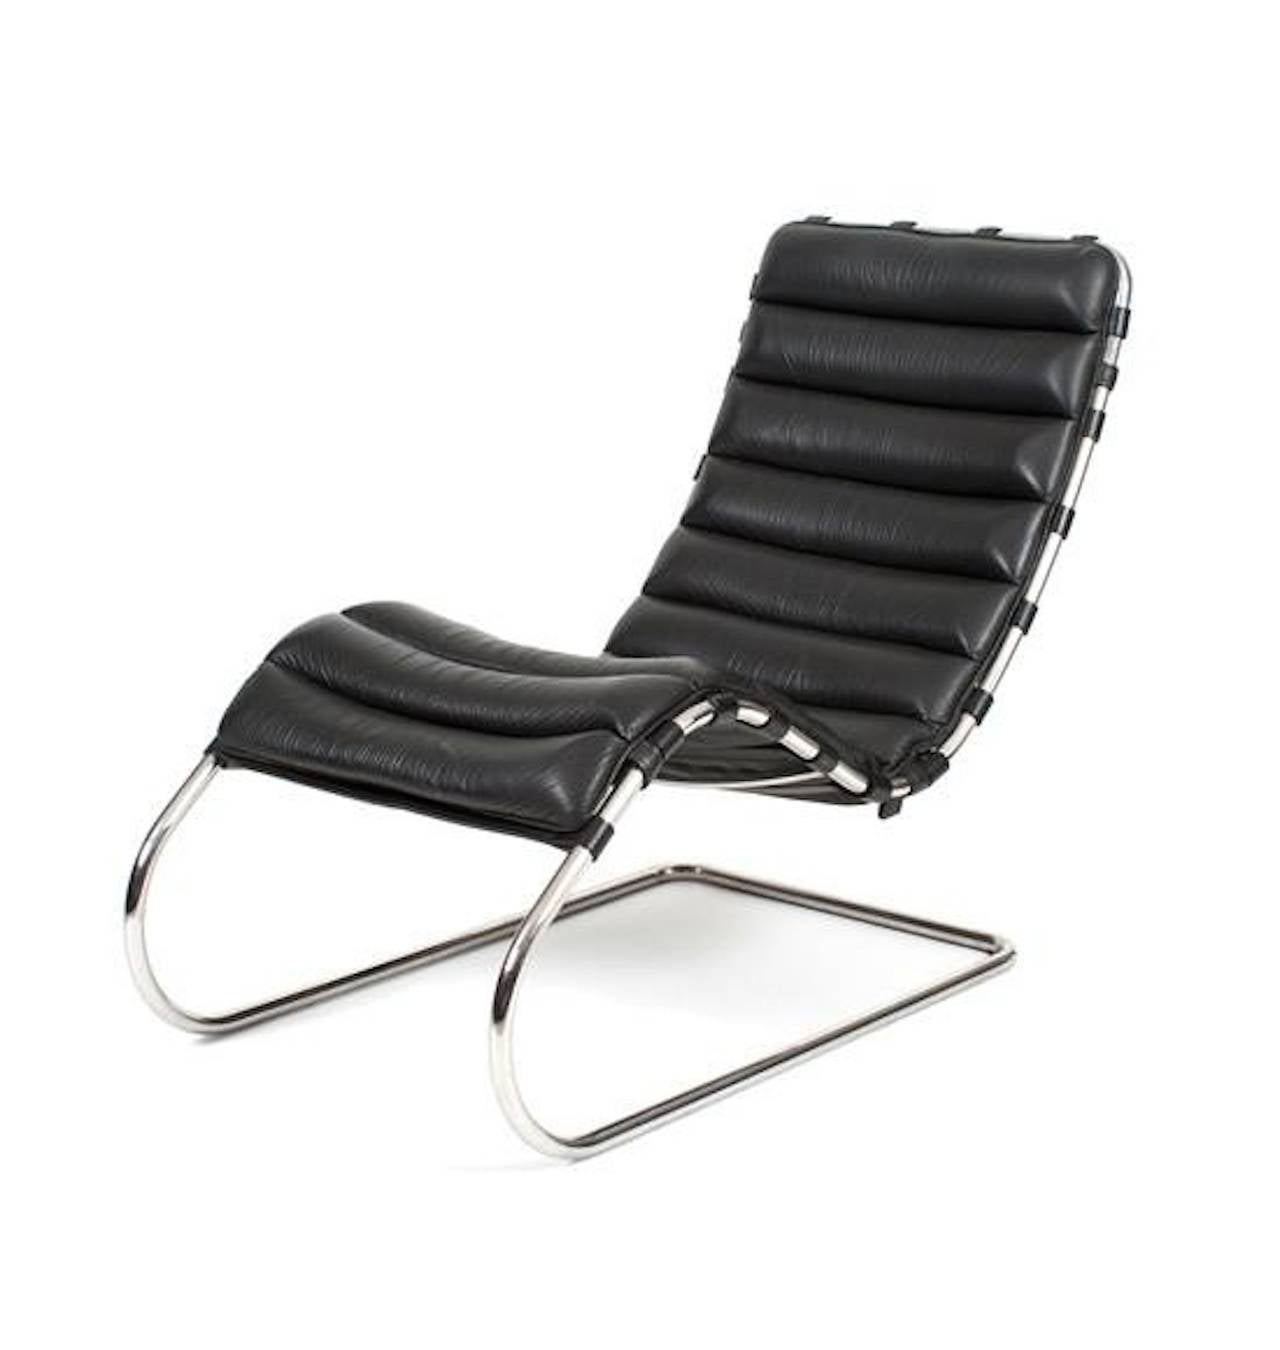 mr chaise by mies van der rohe for knoll studio for sale at 1stdibs. Black Bedroom Furniture Sets. Home Design Ideas